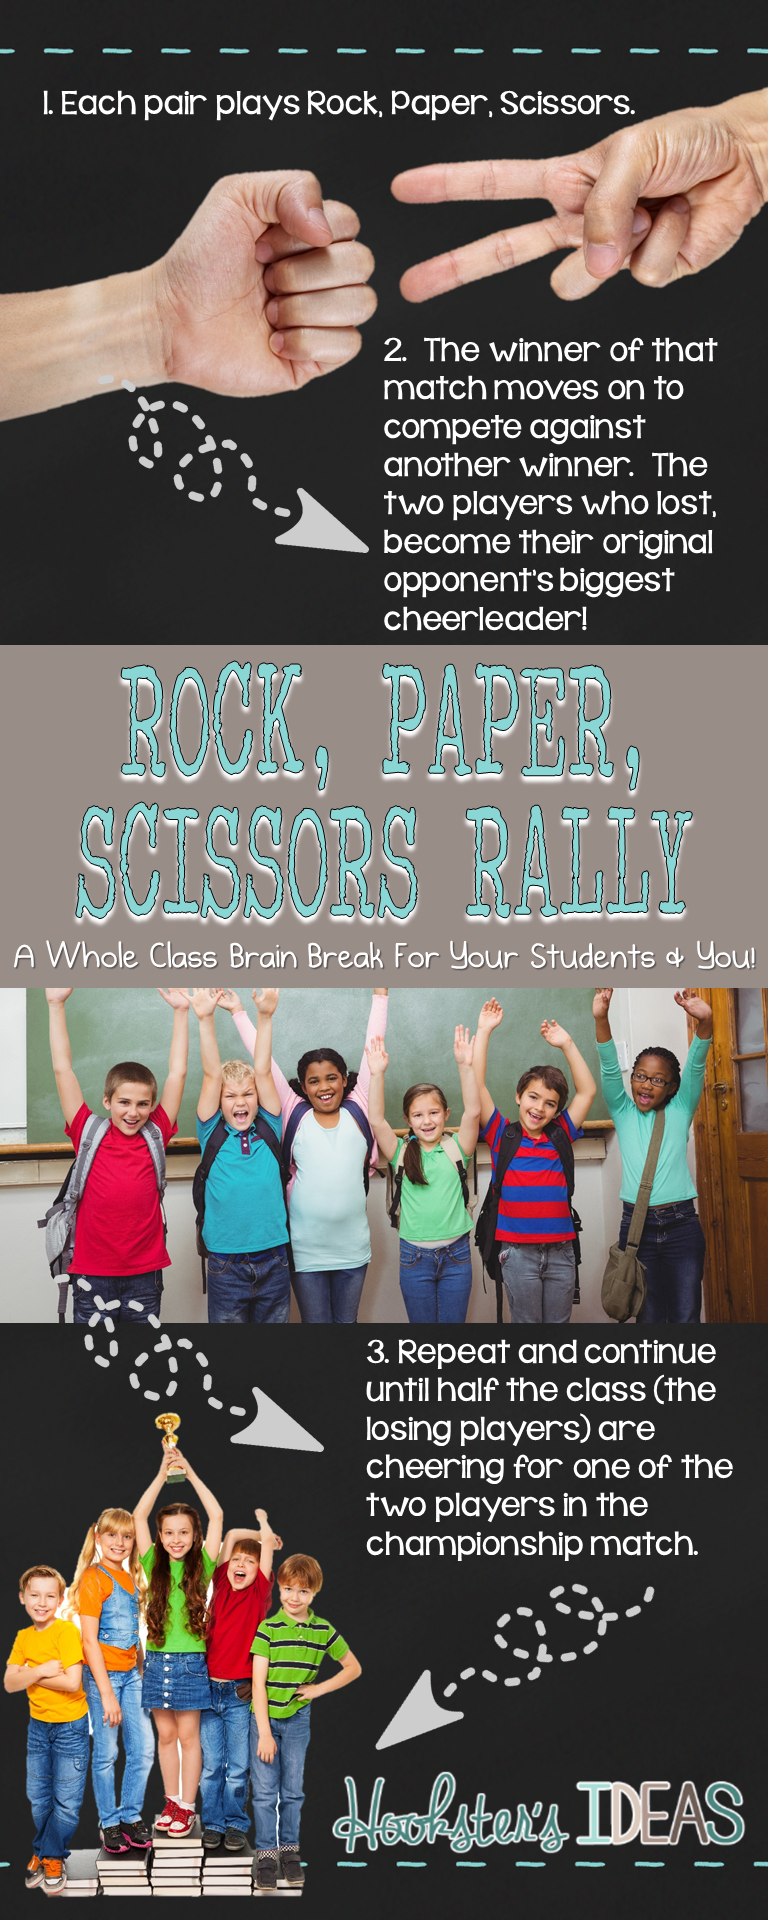 Rock, Paper, Scissors Rally